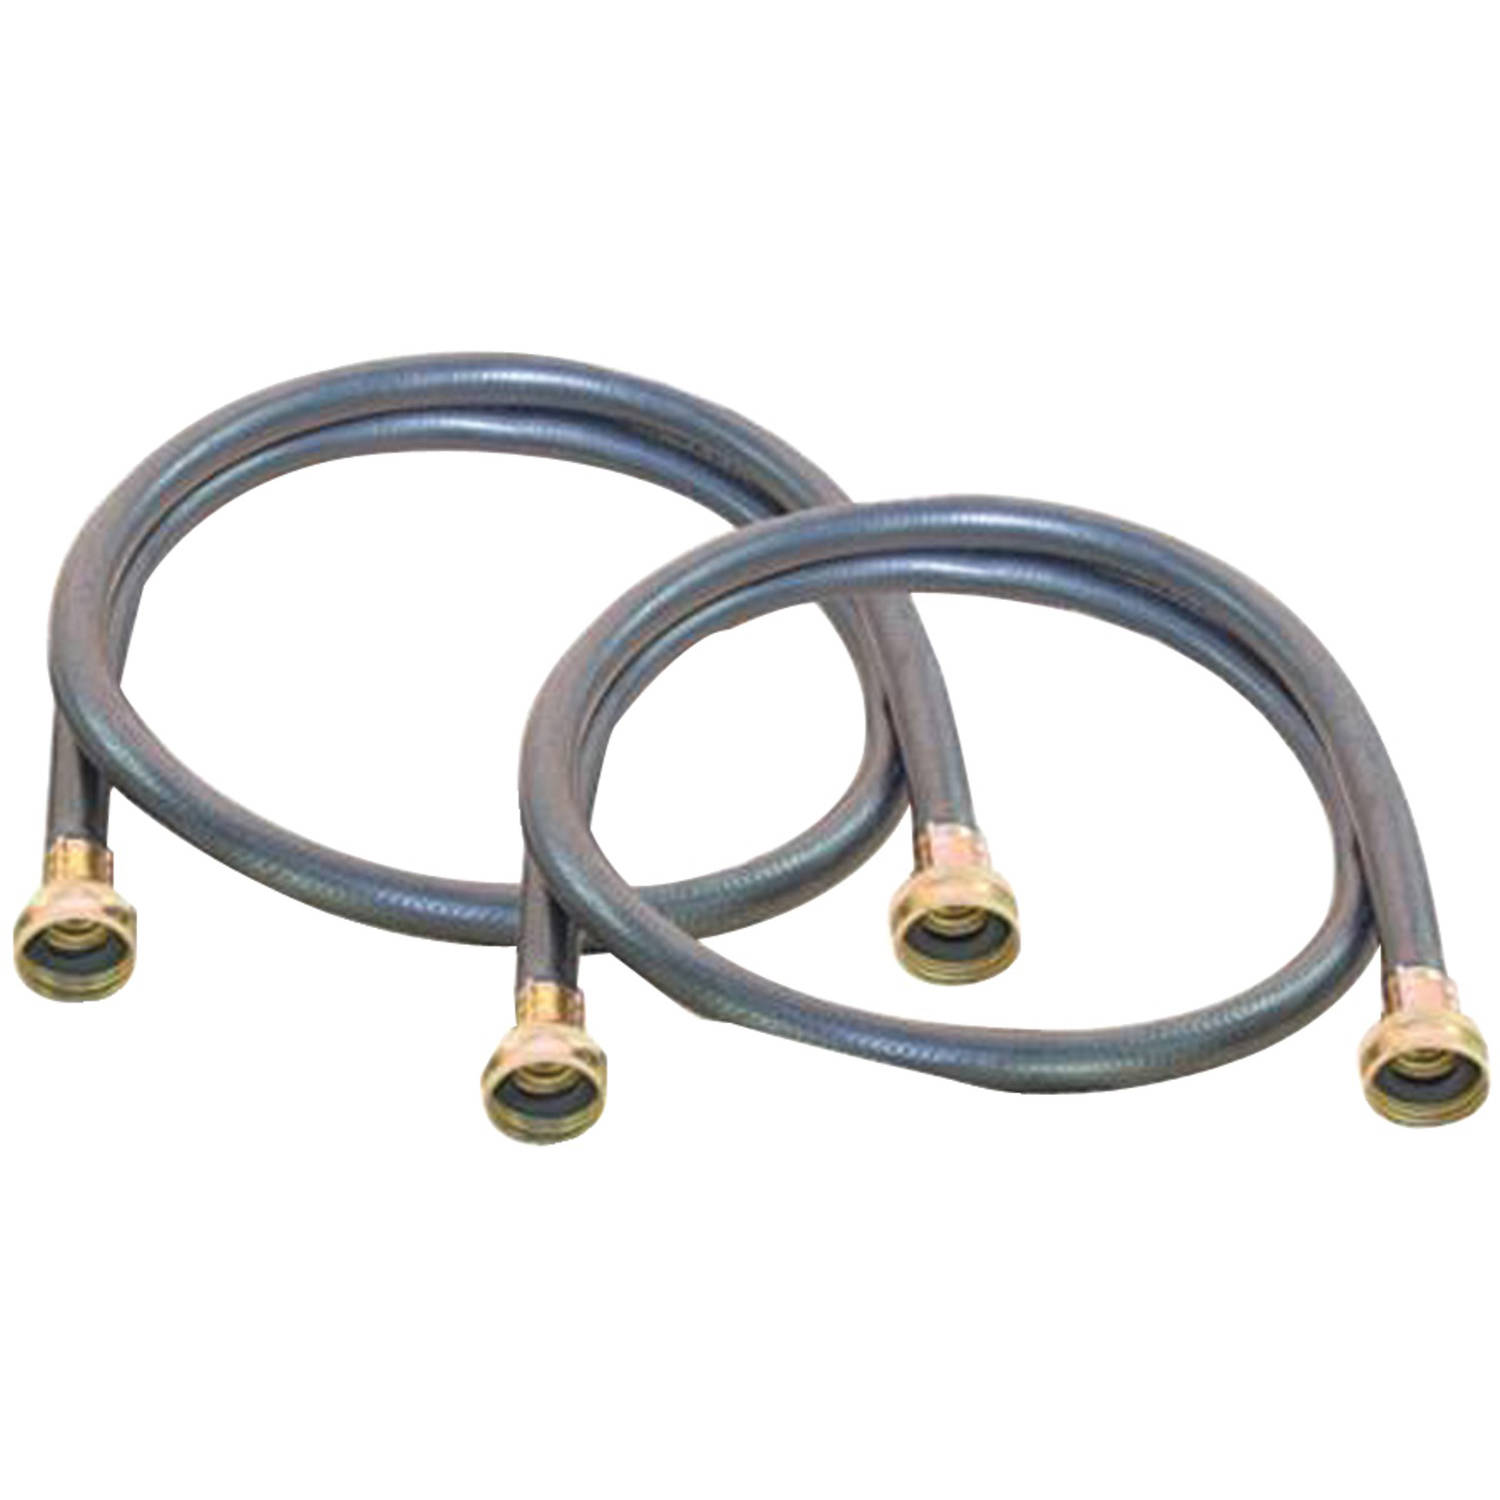 Certified Appliance Wm60br2pk Black Washing Machine Hoses, 2pk (5')